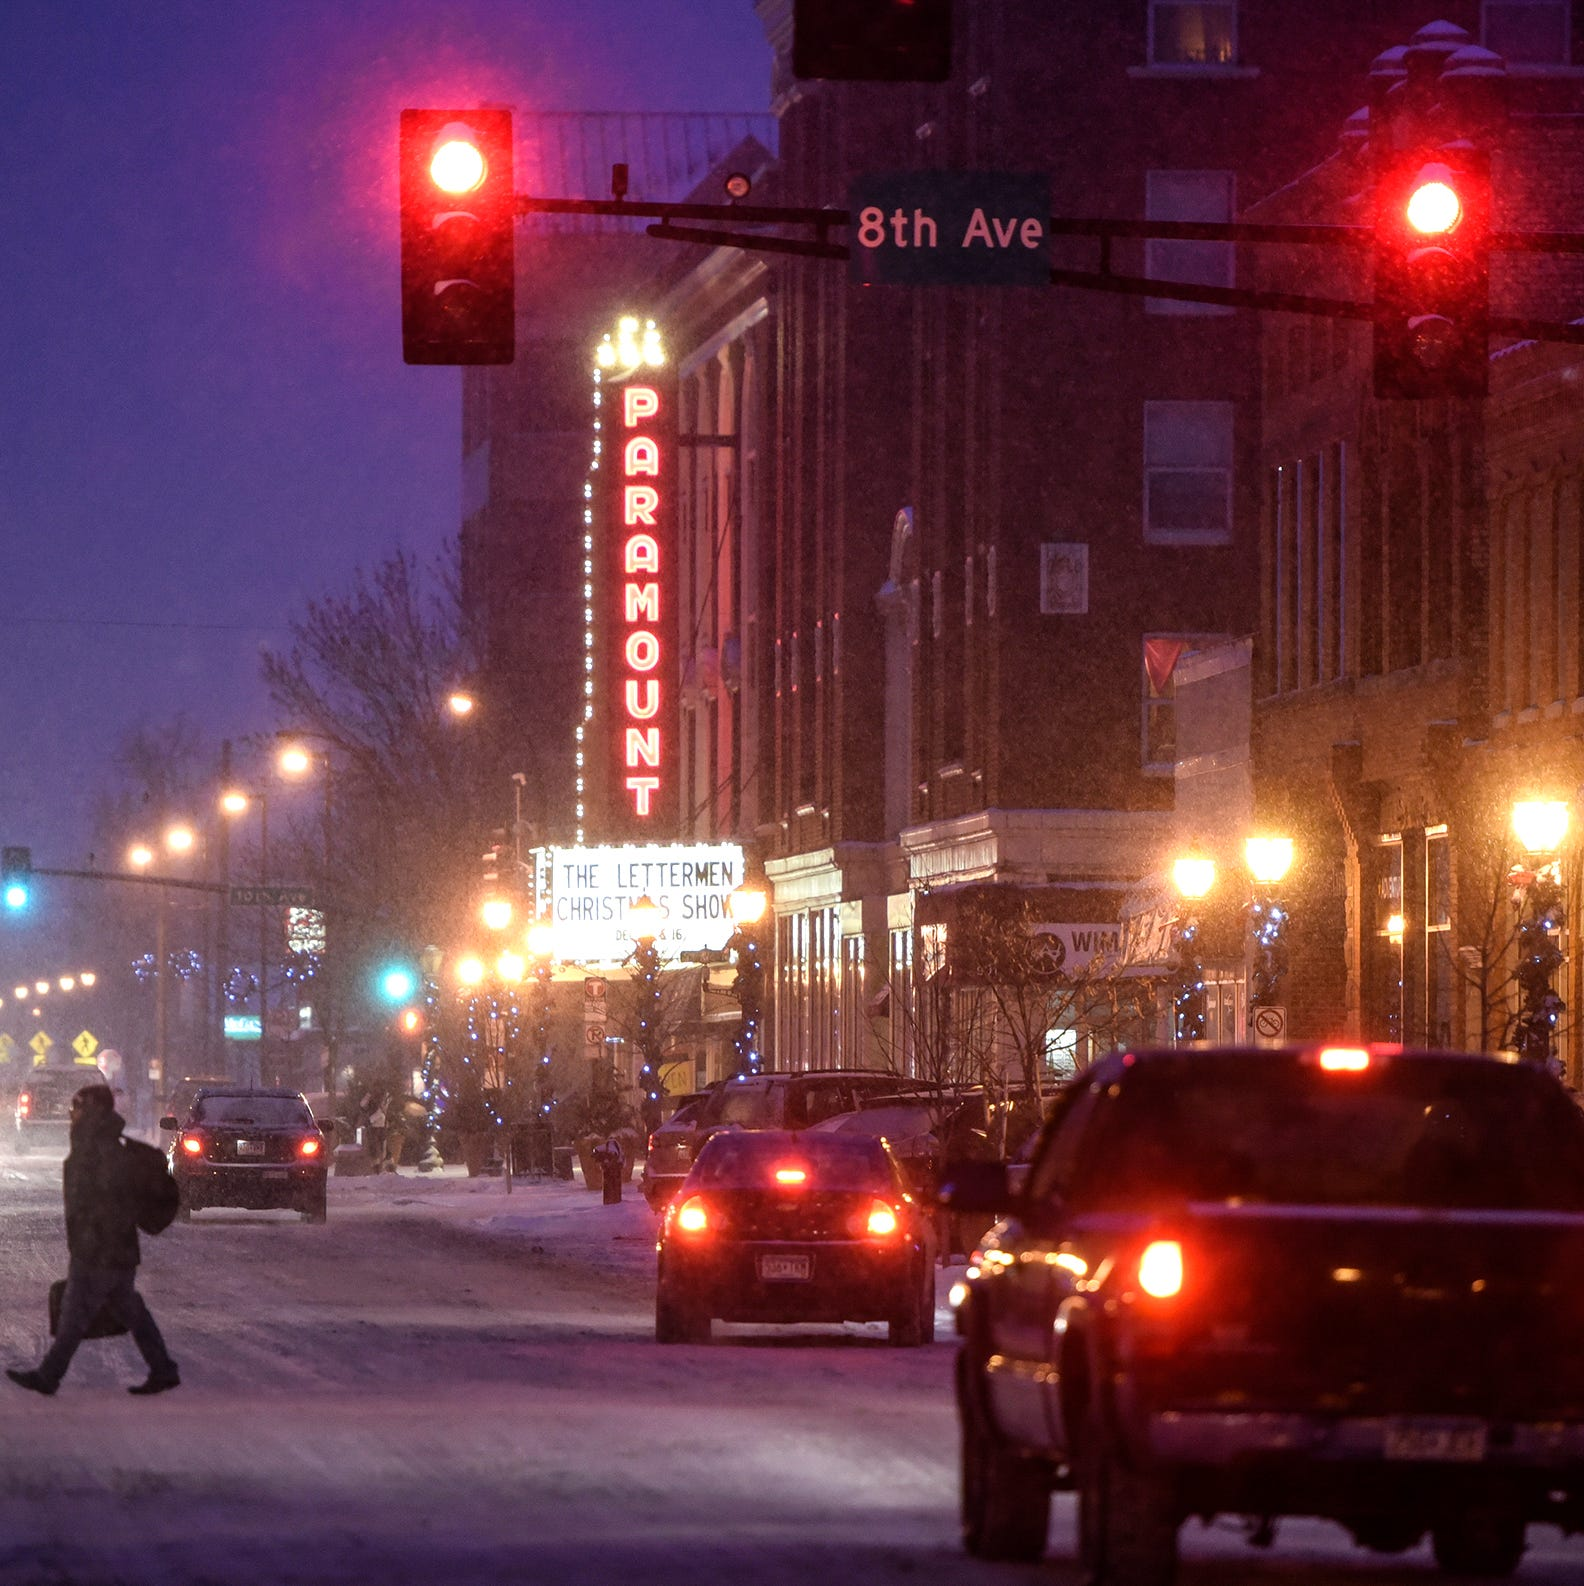 3 doable 2019 resolutions to get you out and about in St. Cloud